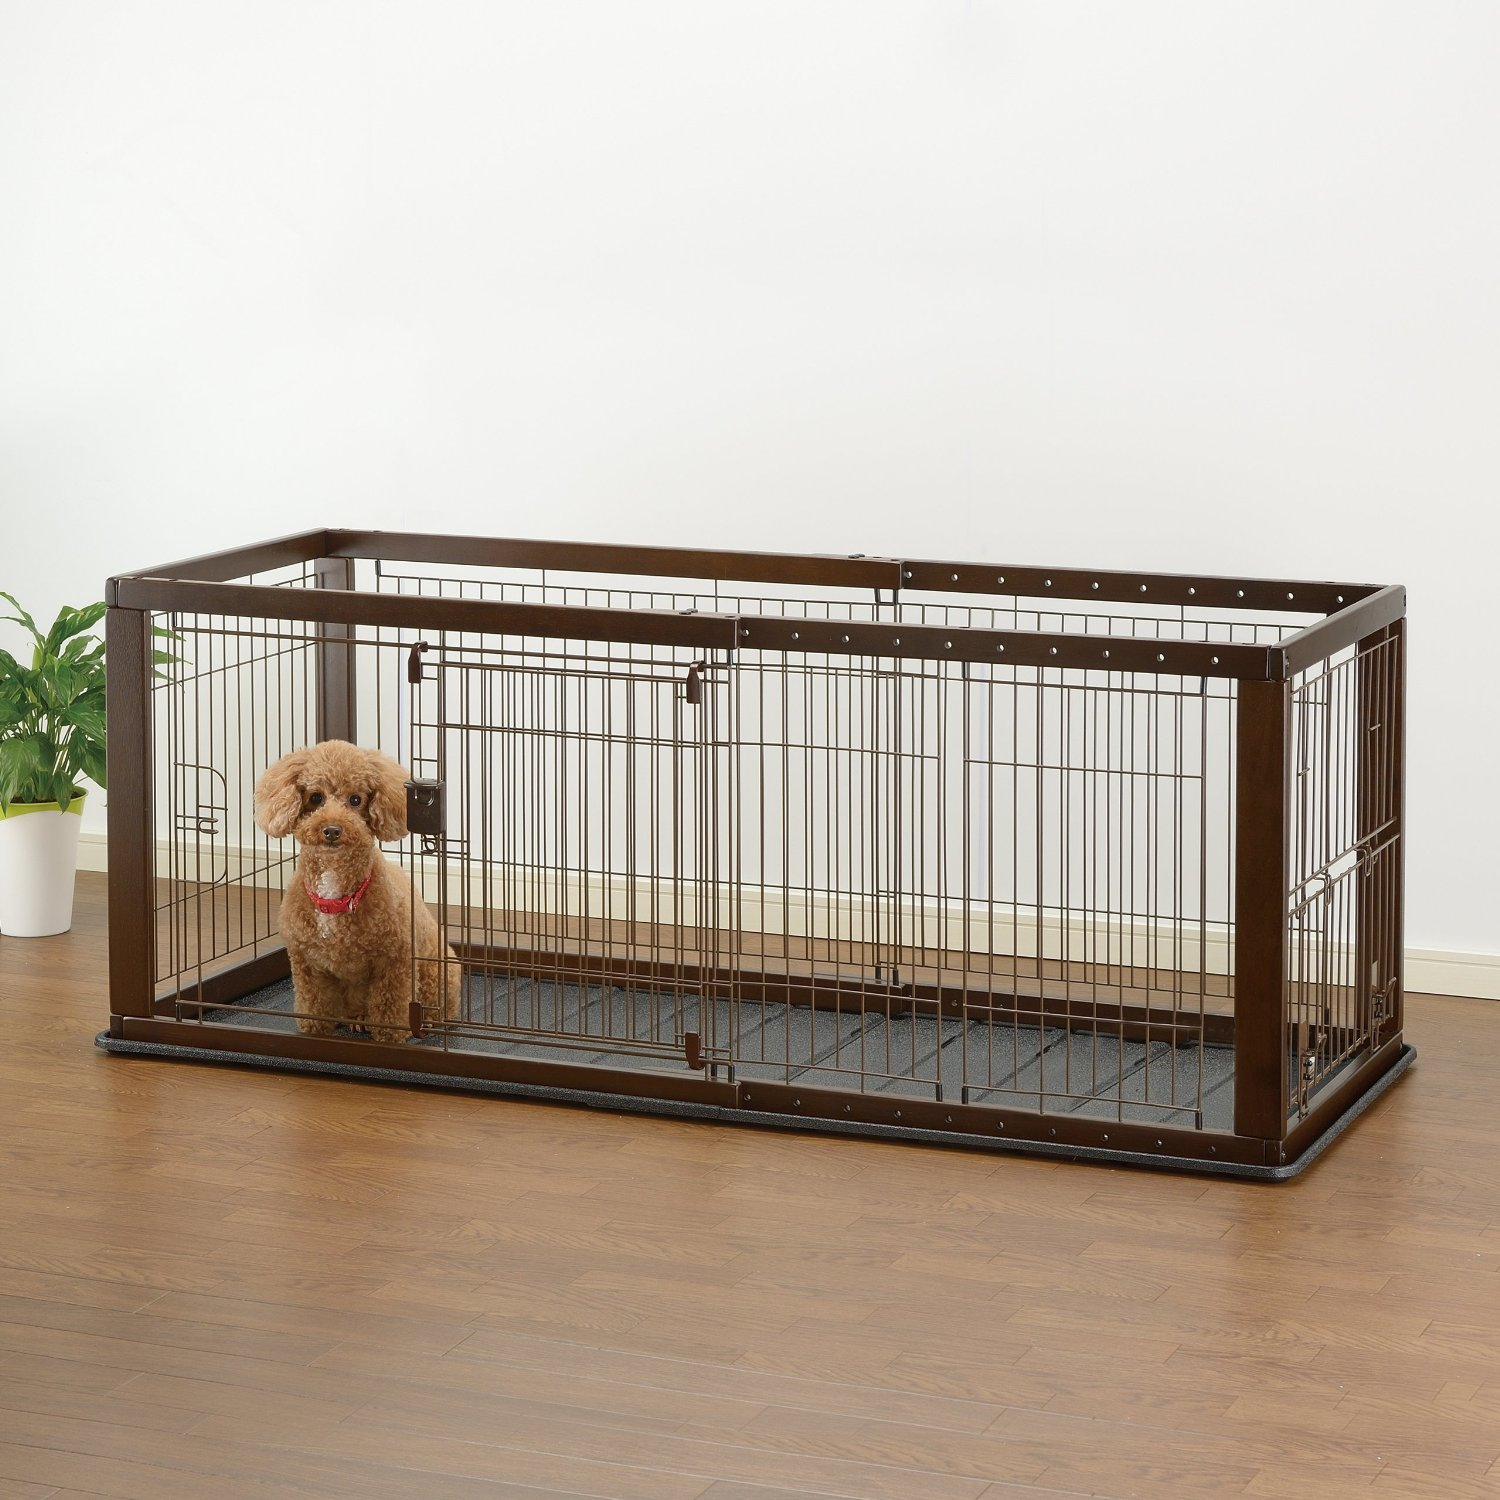 Wire Dog Crate Can Be Made Into Modern Coffee Table Kennel For Less